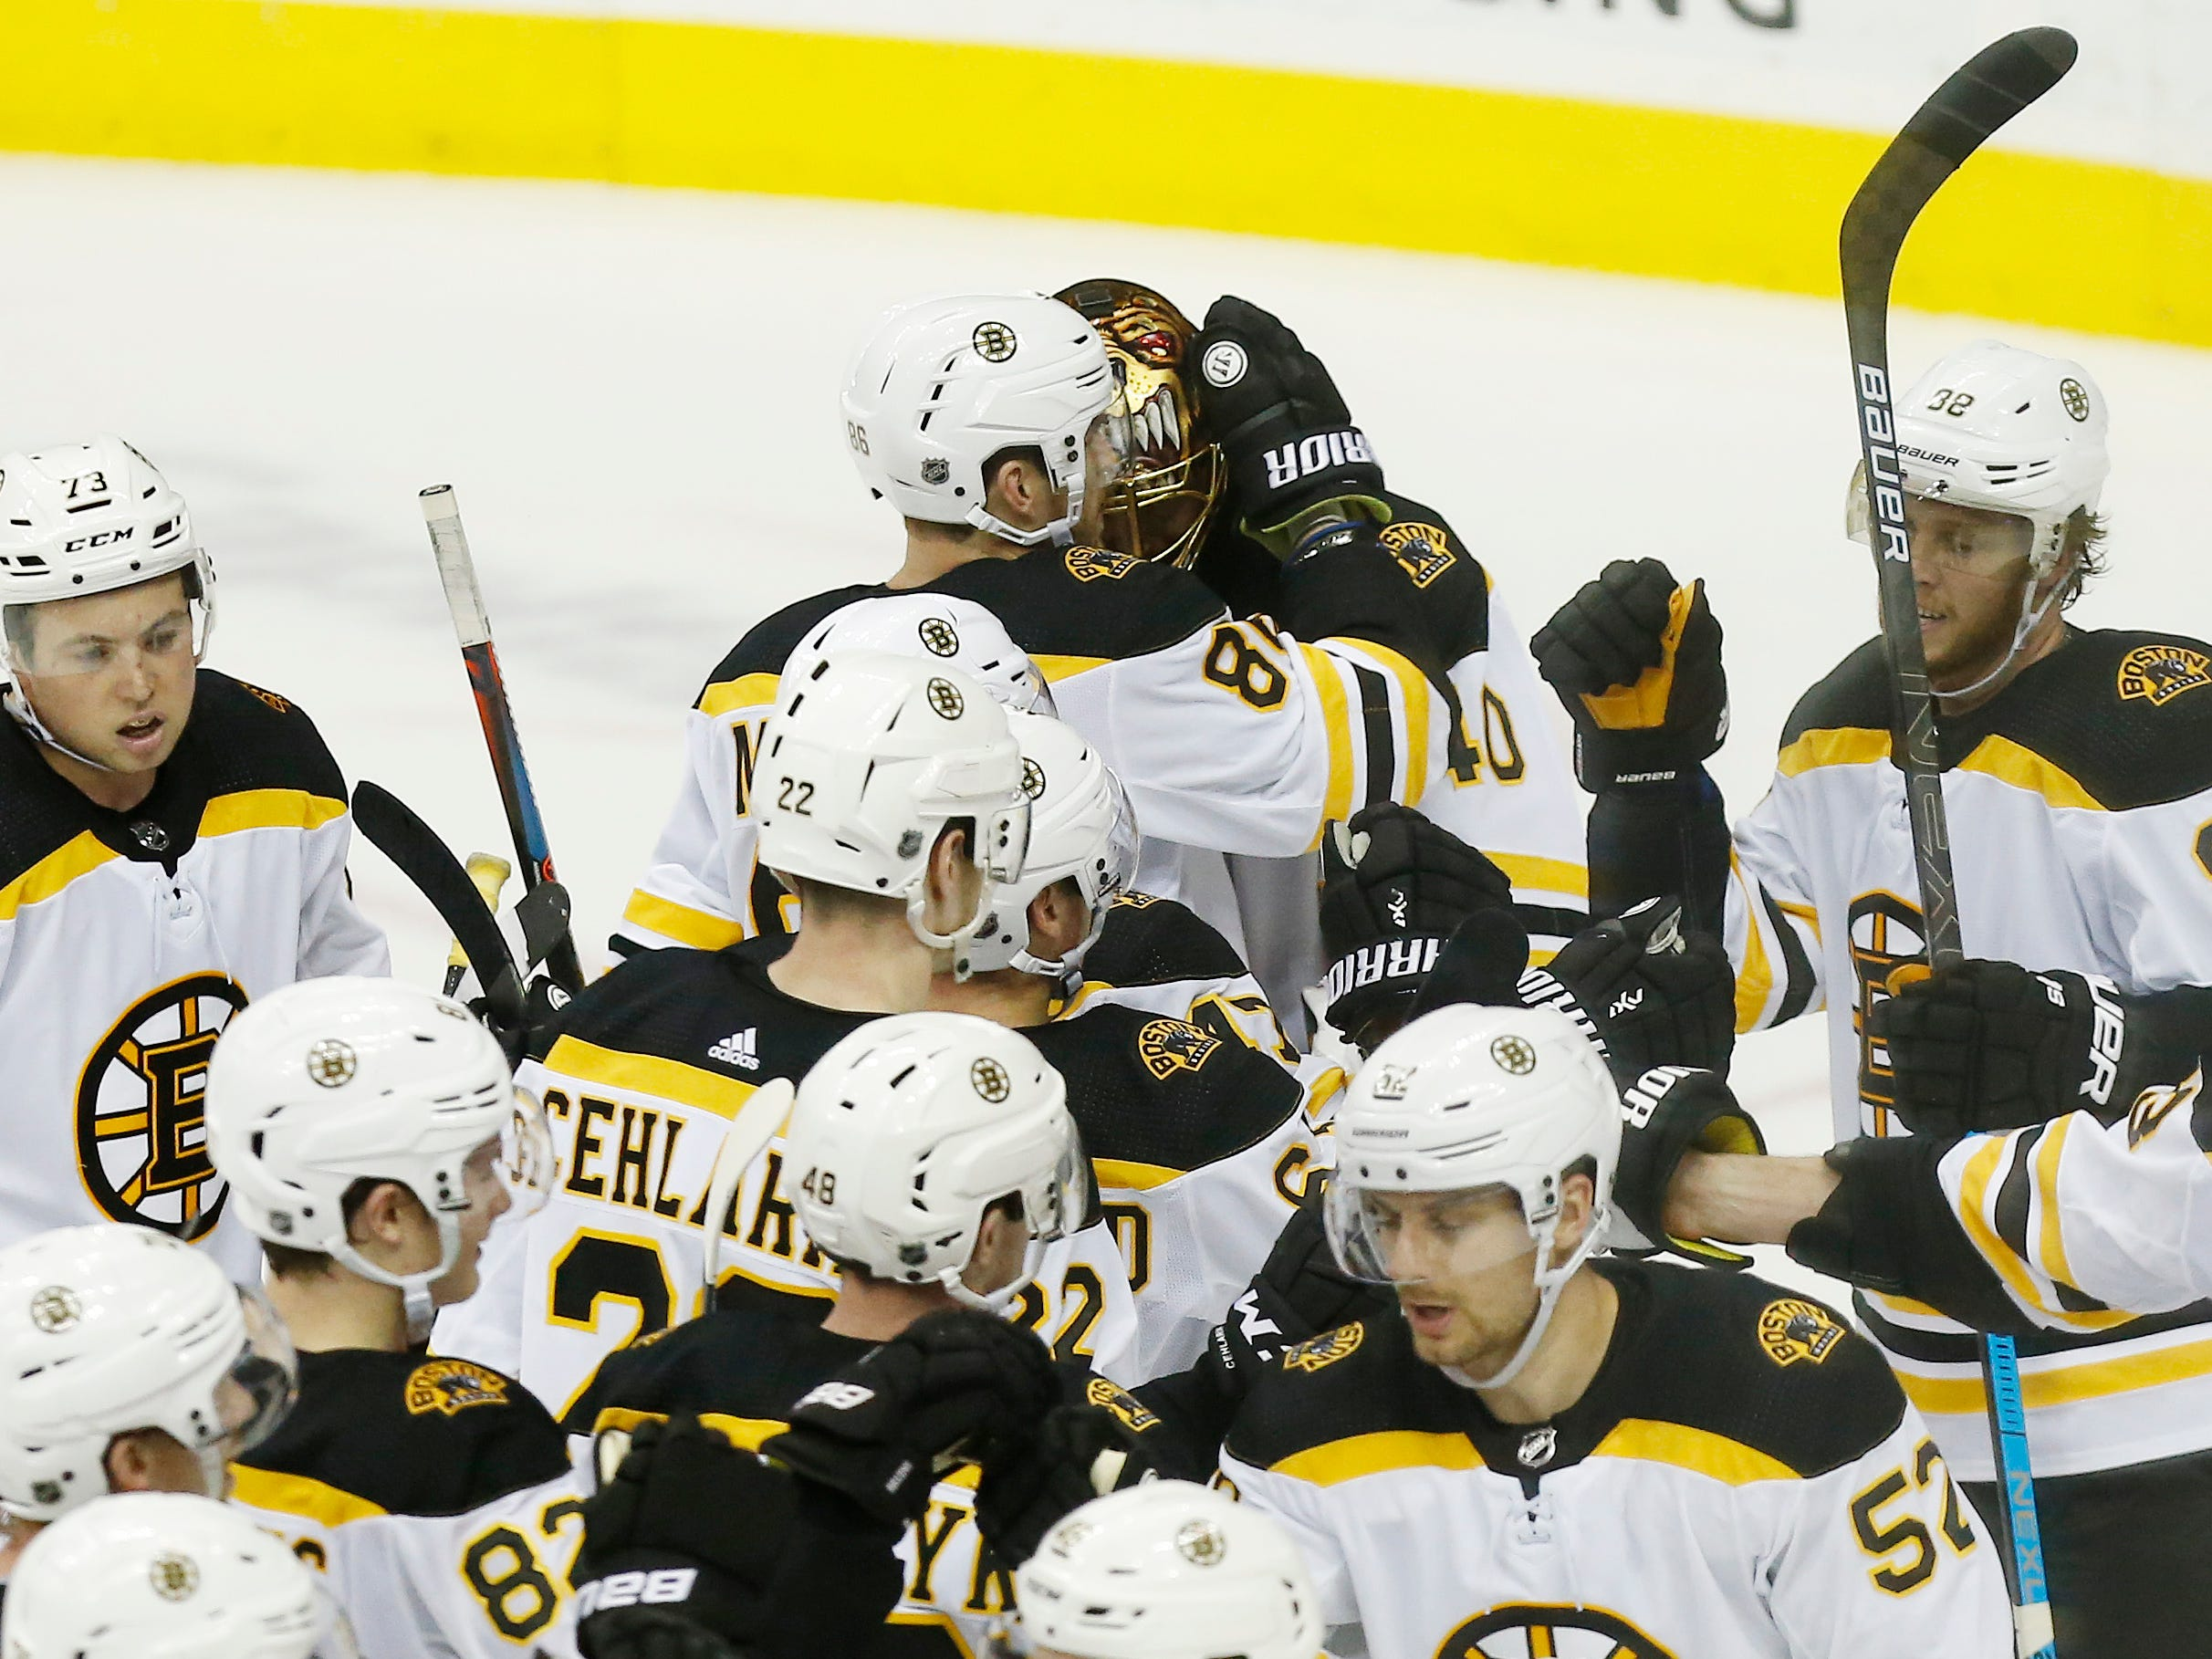 Feb. 3: Boston Bruins goaltender Tuukka Rask (40) celebrates with teammates after a 1-0 victory against the Washington Capitals. It was his 253rd career victory, giving him the franchise record.